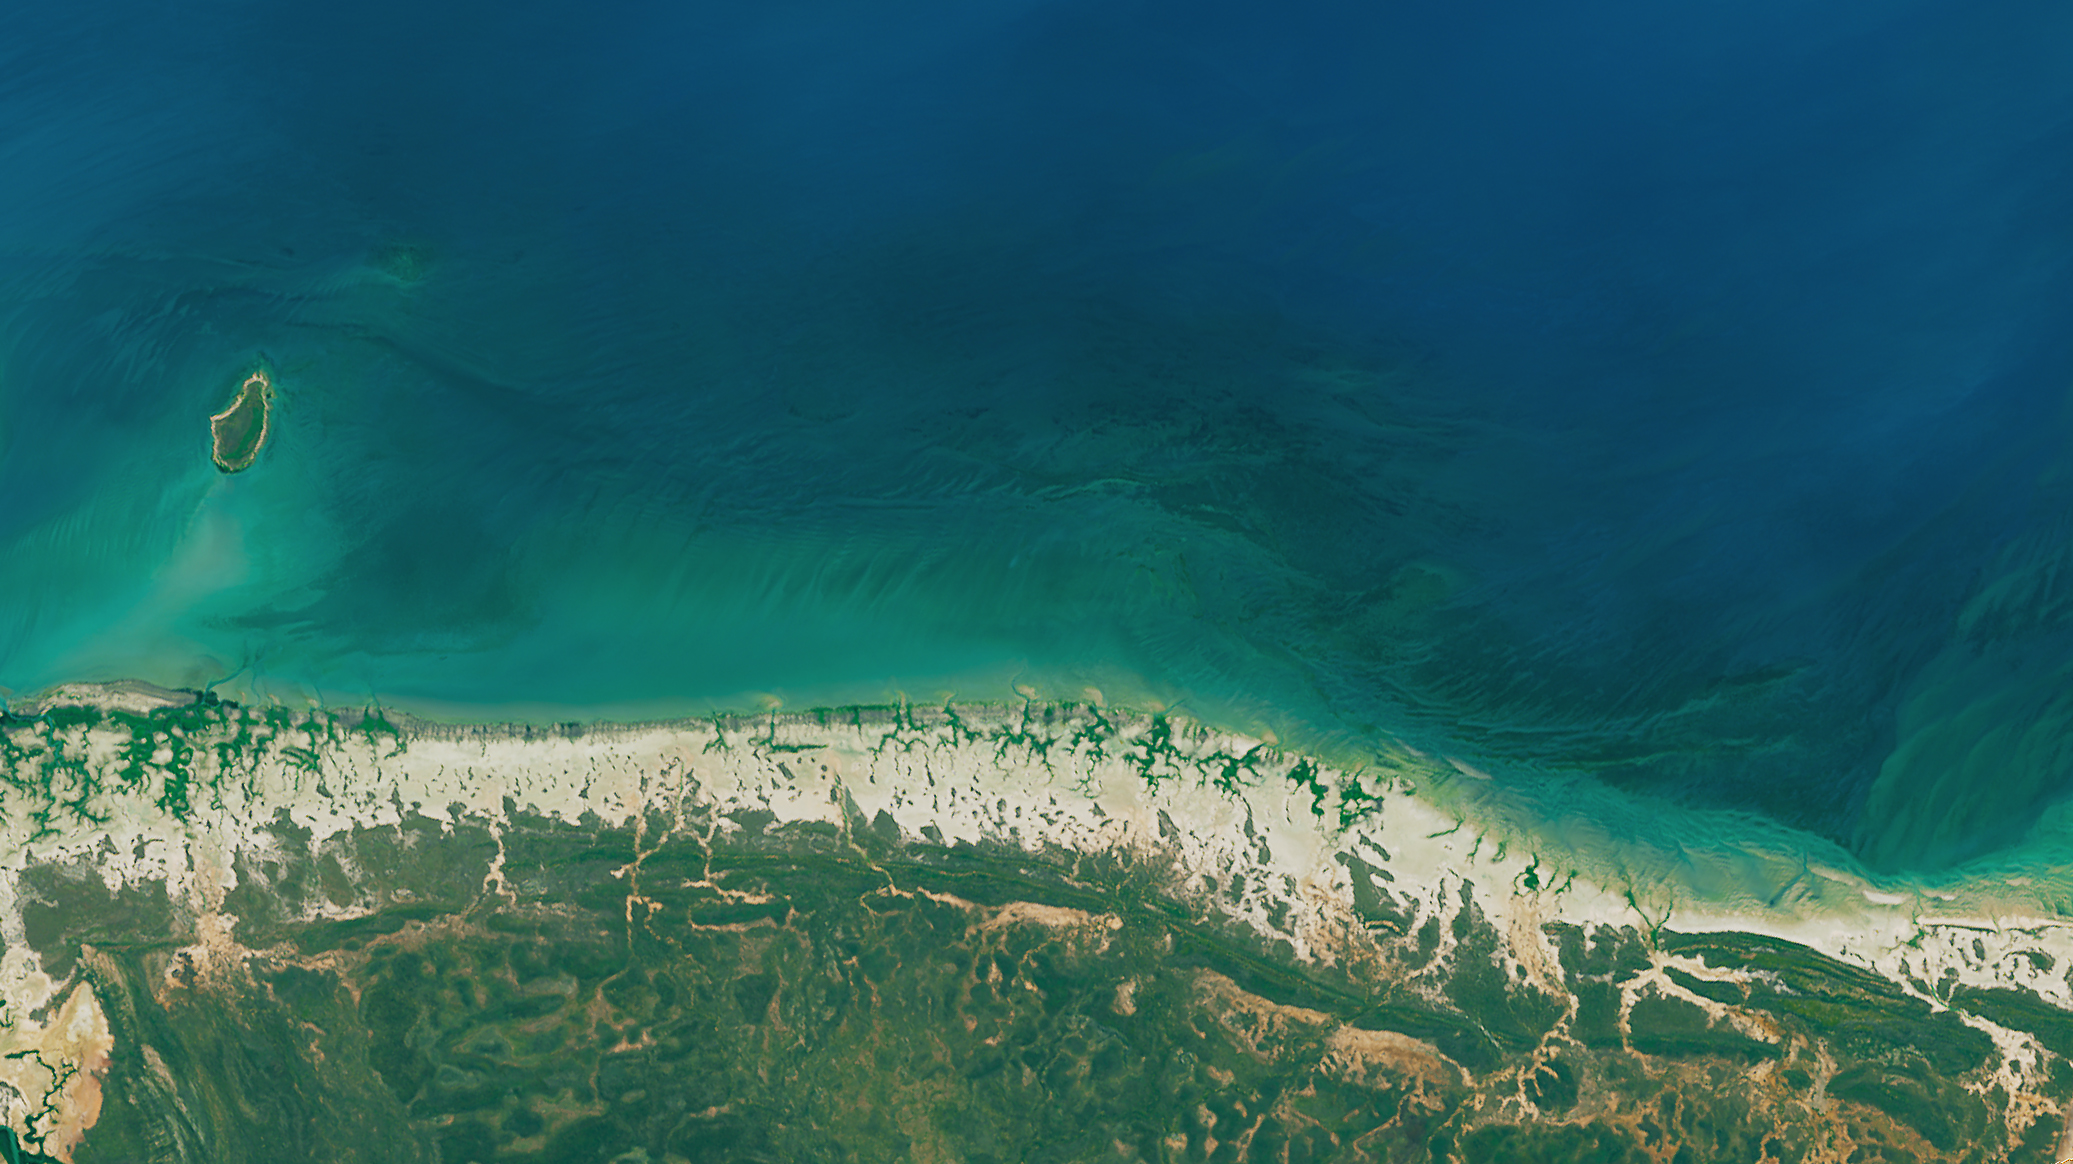 Today's Image of the Day comes from the NASA Earth Observatory and features a look at mangroves dying off along the northern coast of Australia along the Gulf of Carpentaria.